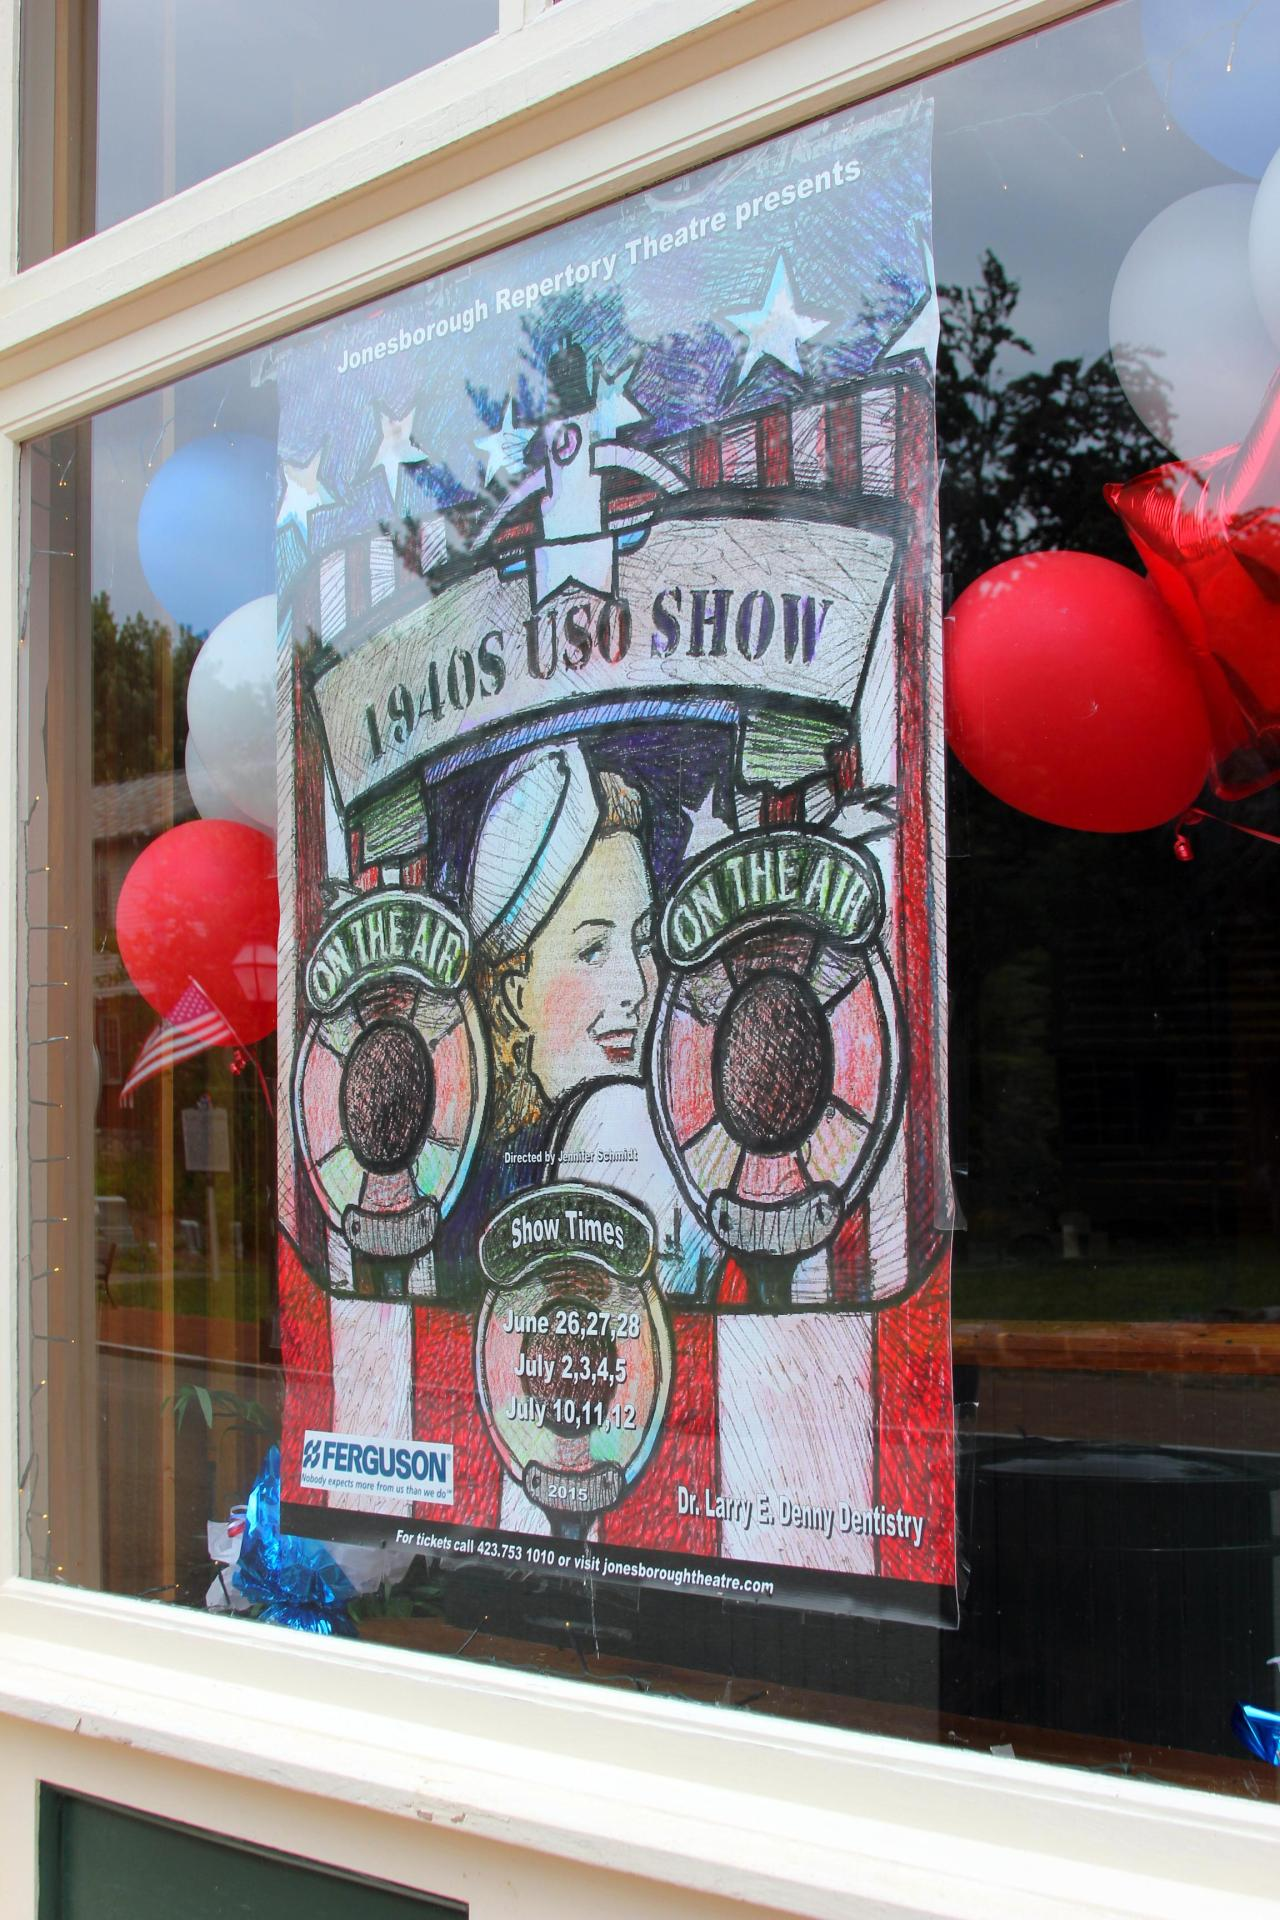 Jonesborough Repertory Theatre window.